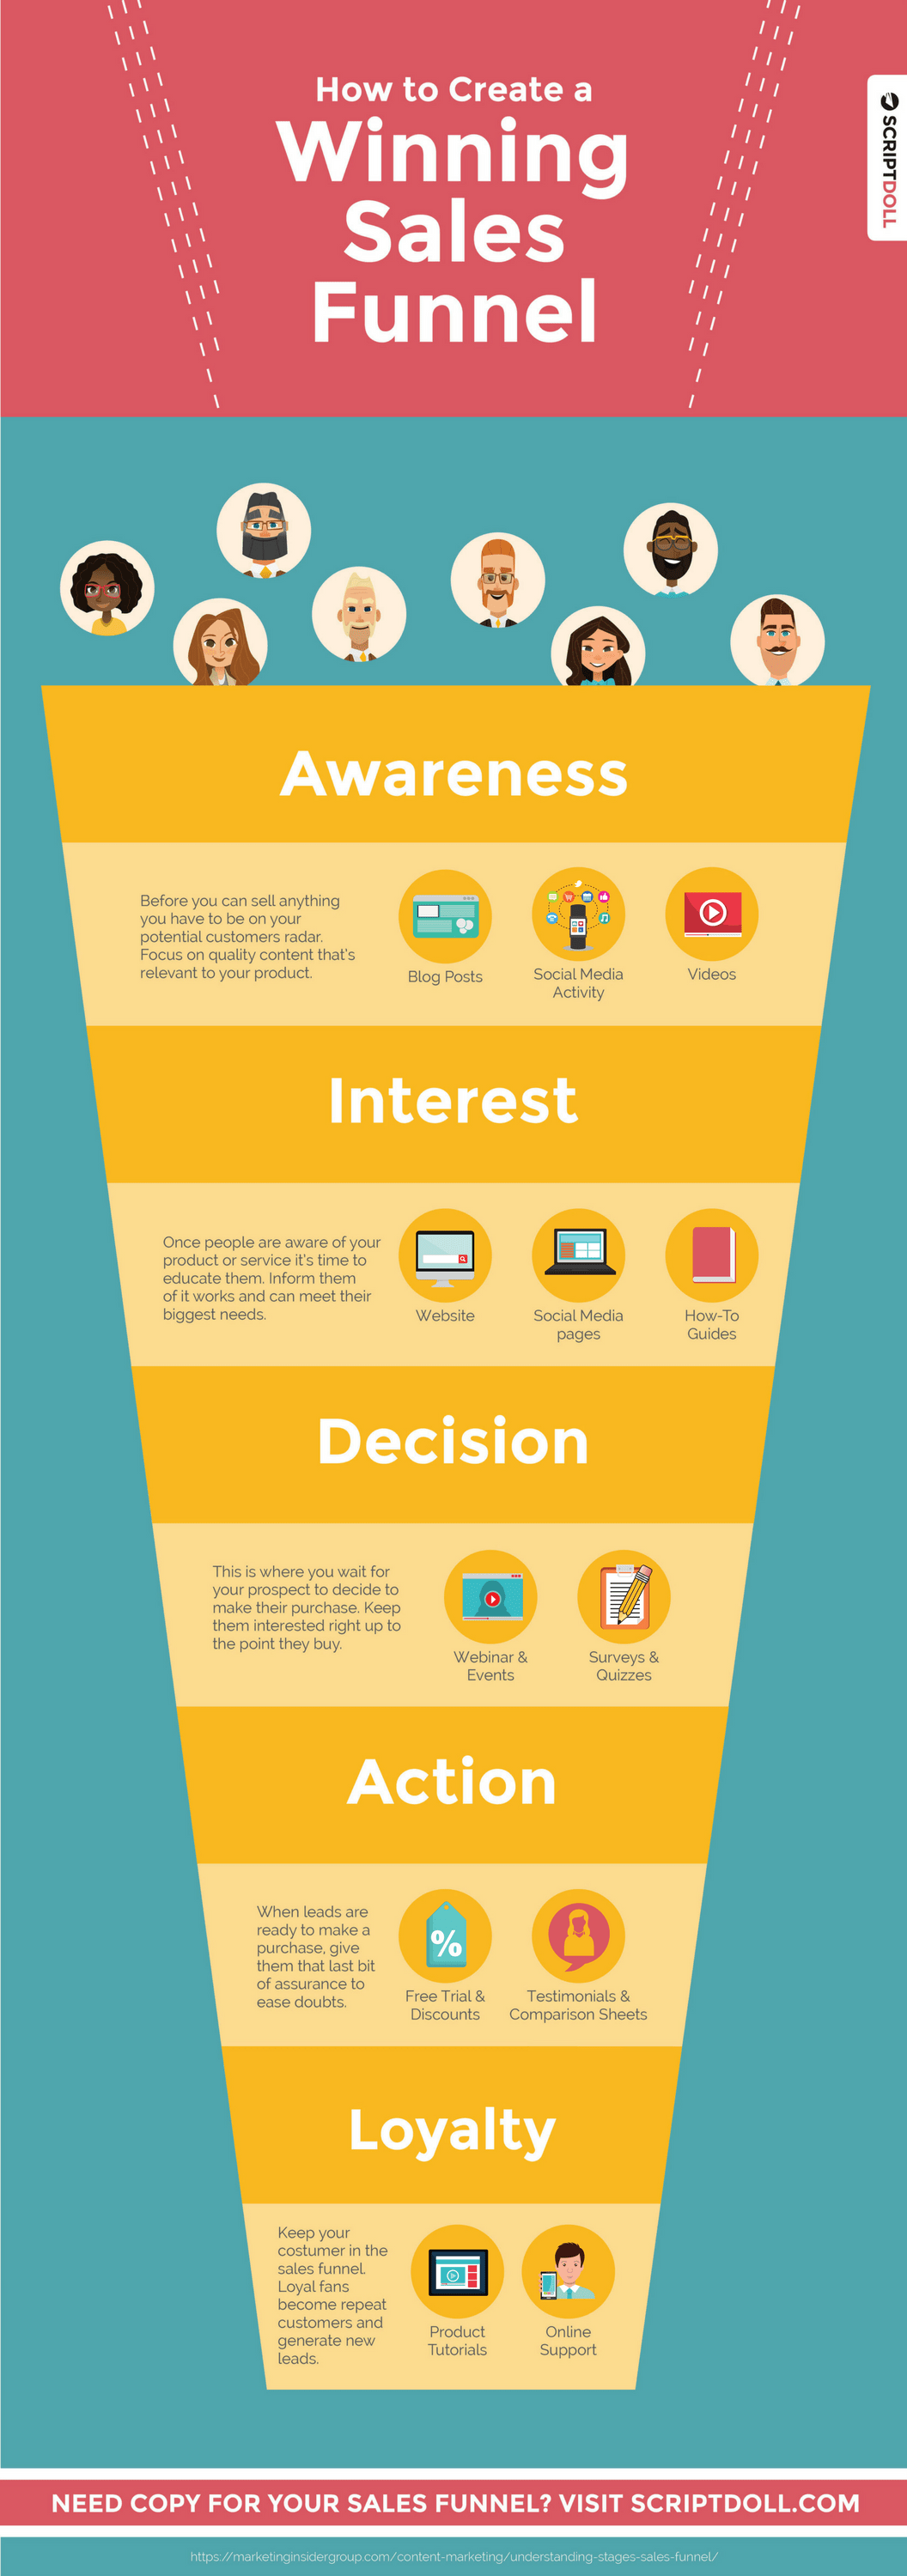 how to create a winning sales funnel